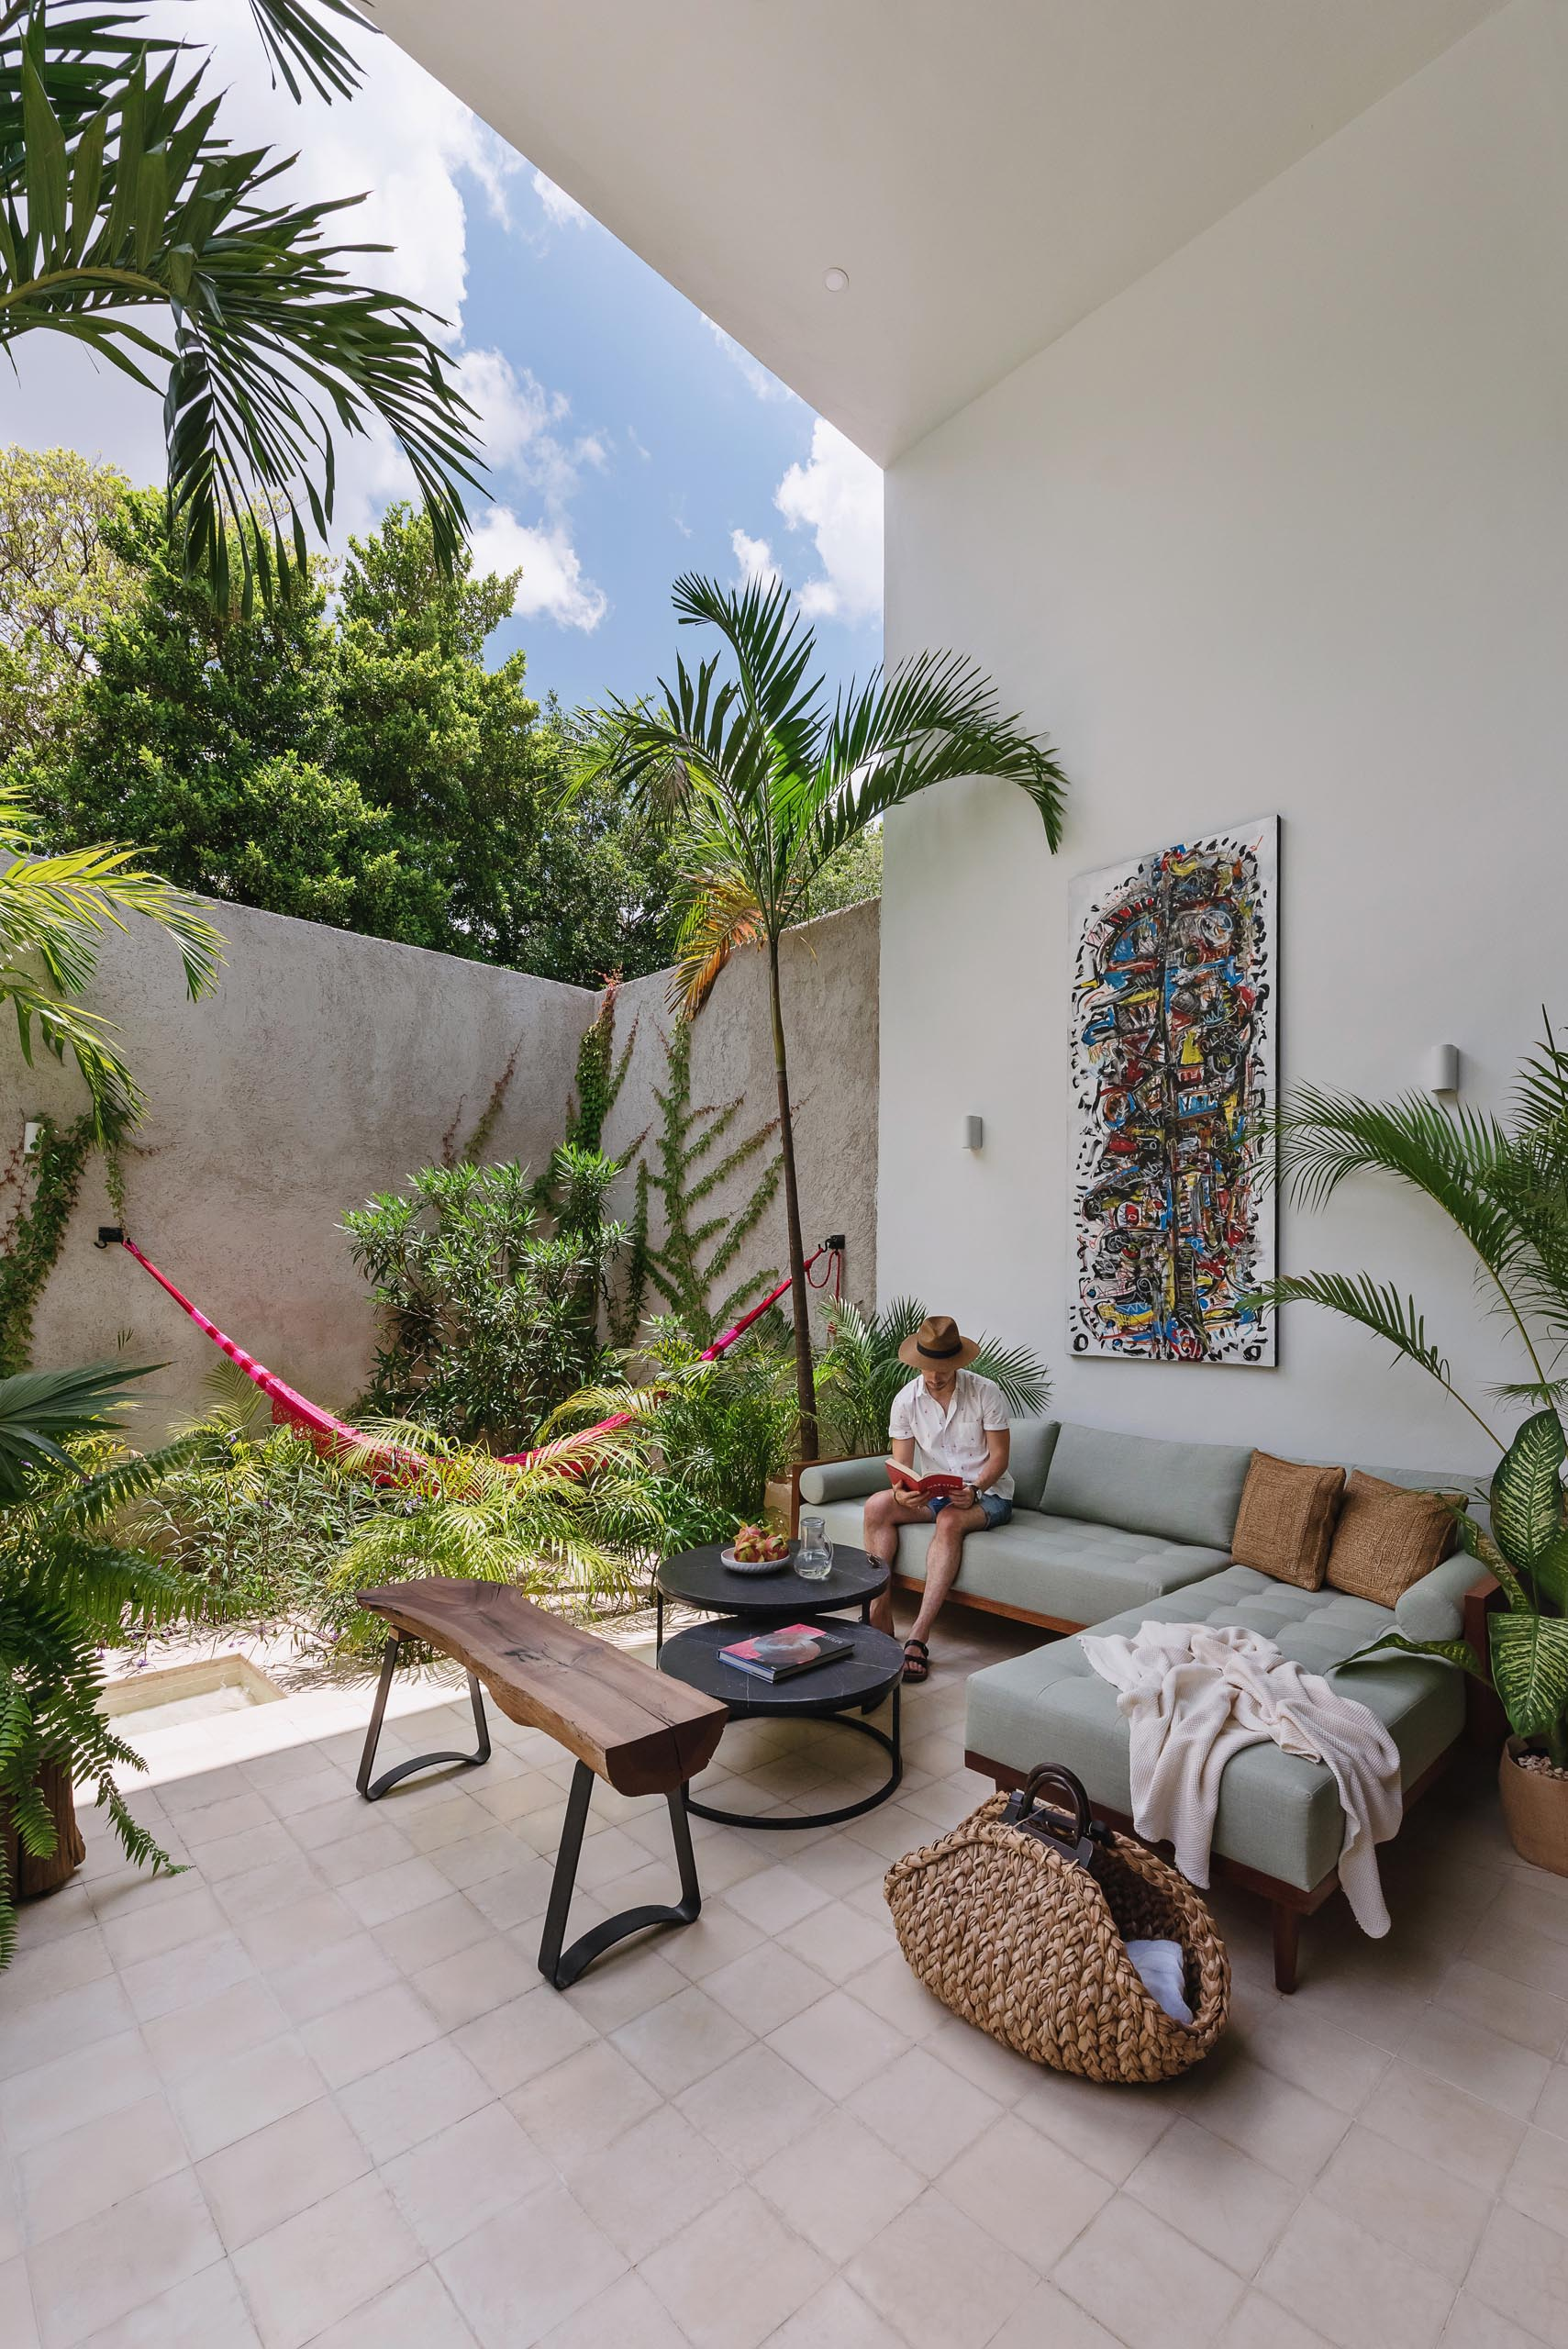 An outdoor living room with a comfortable sofa and a hammock surrounded by tropical plants.